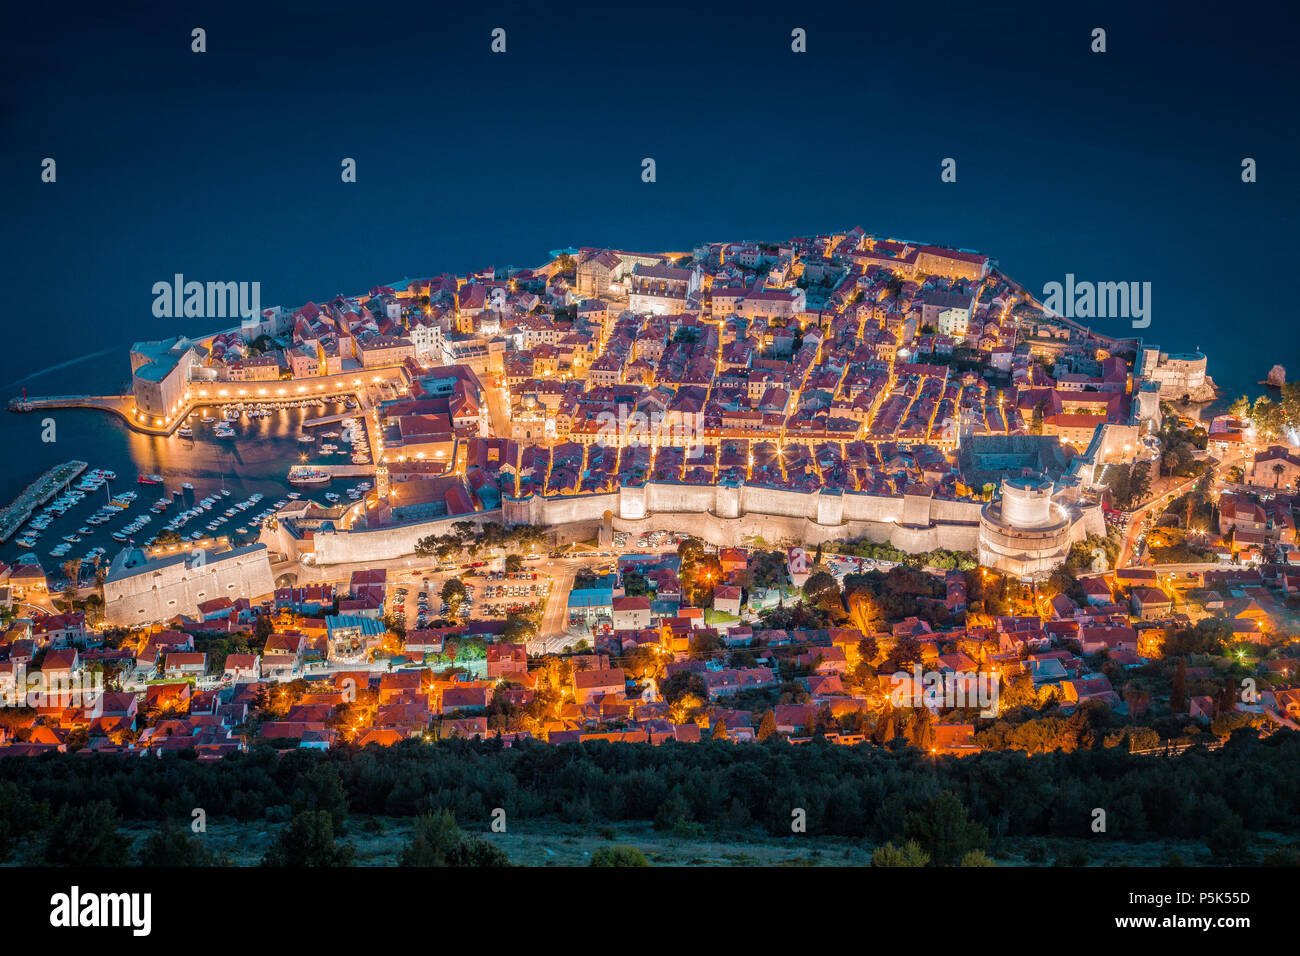 Panoramic aerial view of the historic town of Dubrovnik, one of the most famous tourist destinations in the Mediterranean Sea, in beautiful evening tw - Stock Image